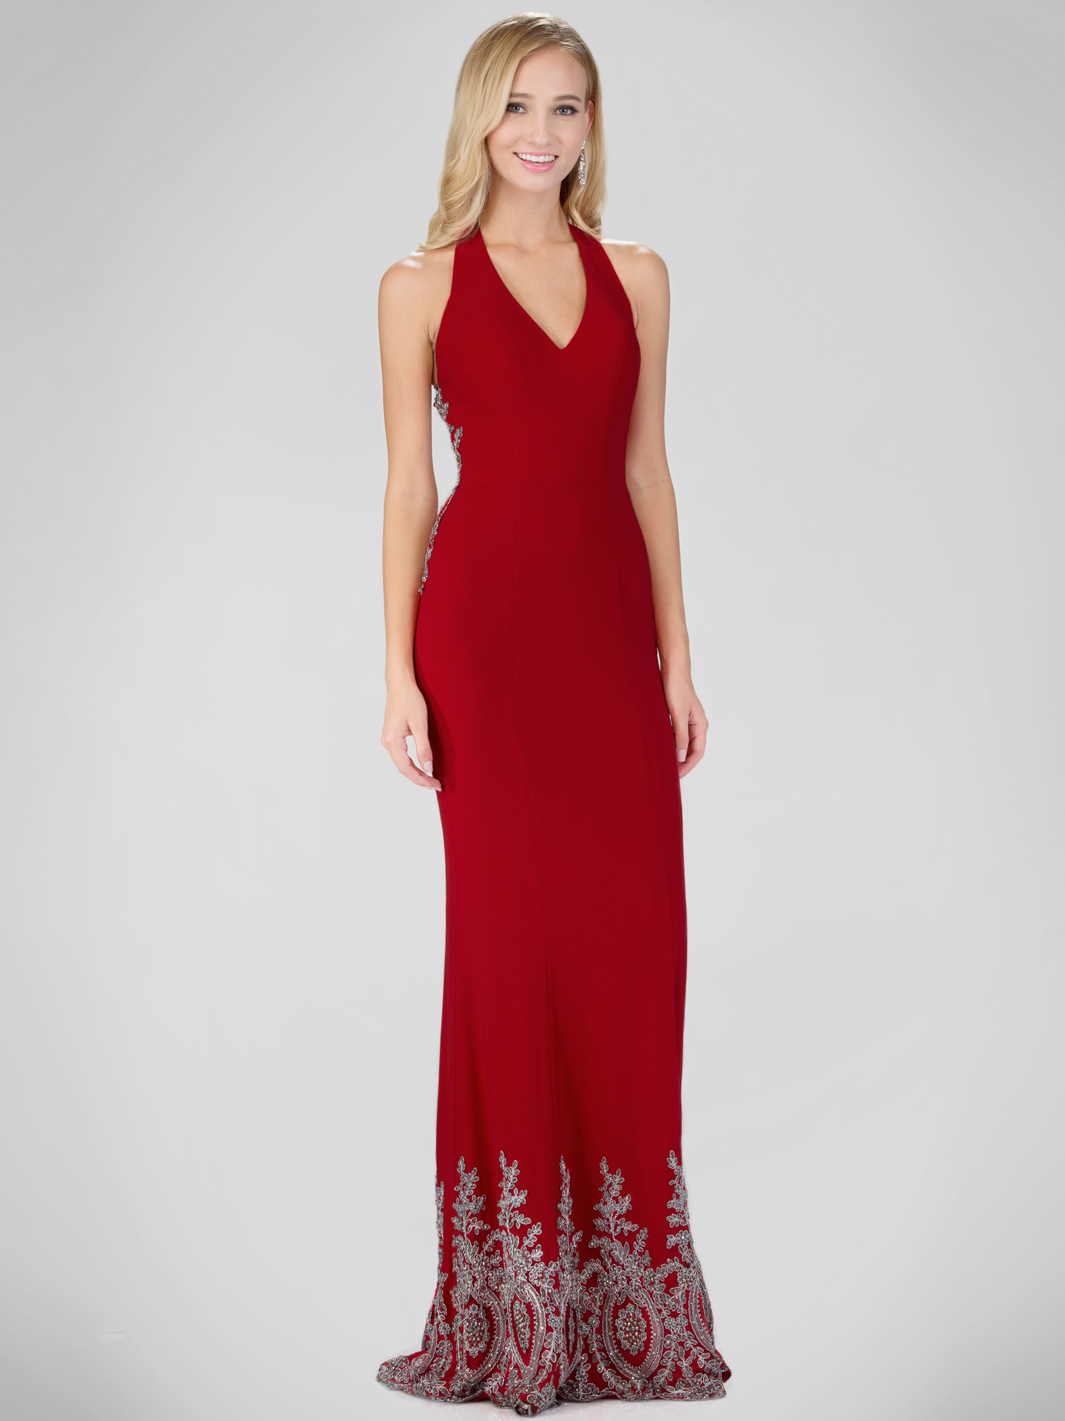 Red Carpet Inspired Halter Top Evening Dress With Train